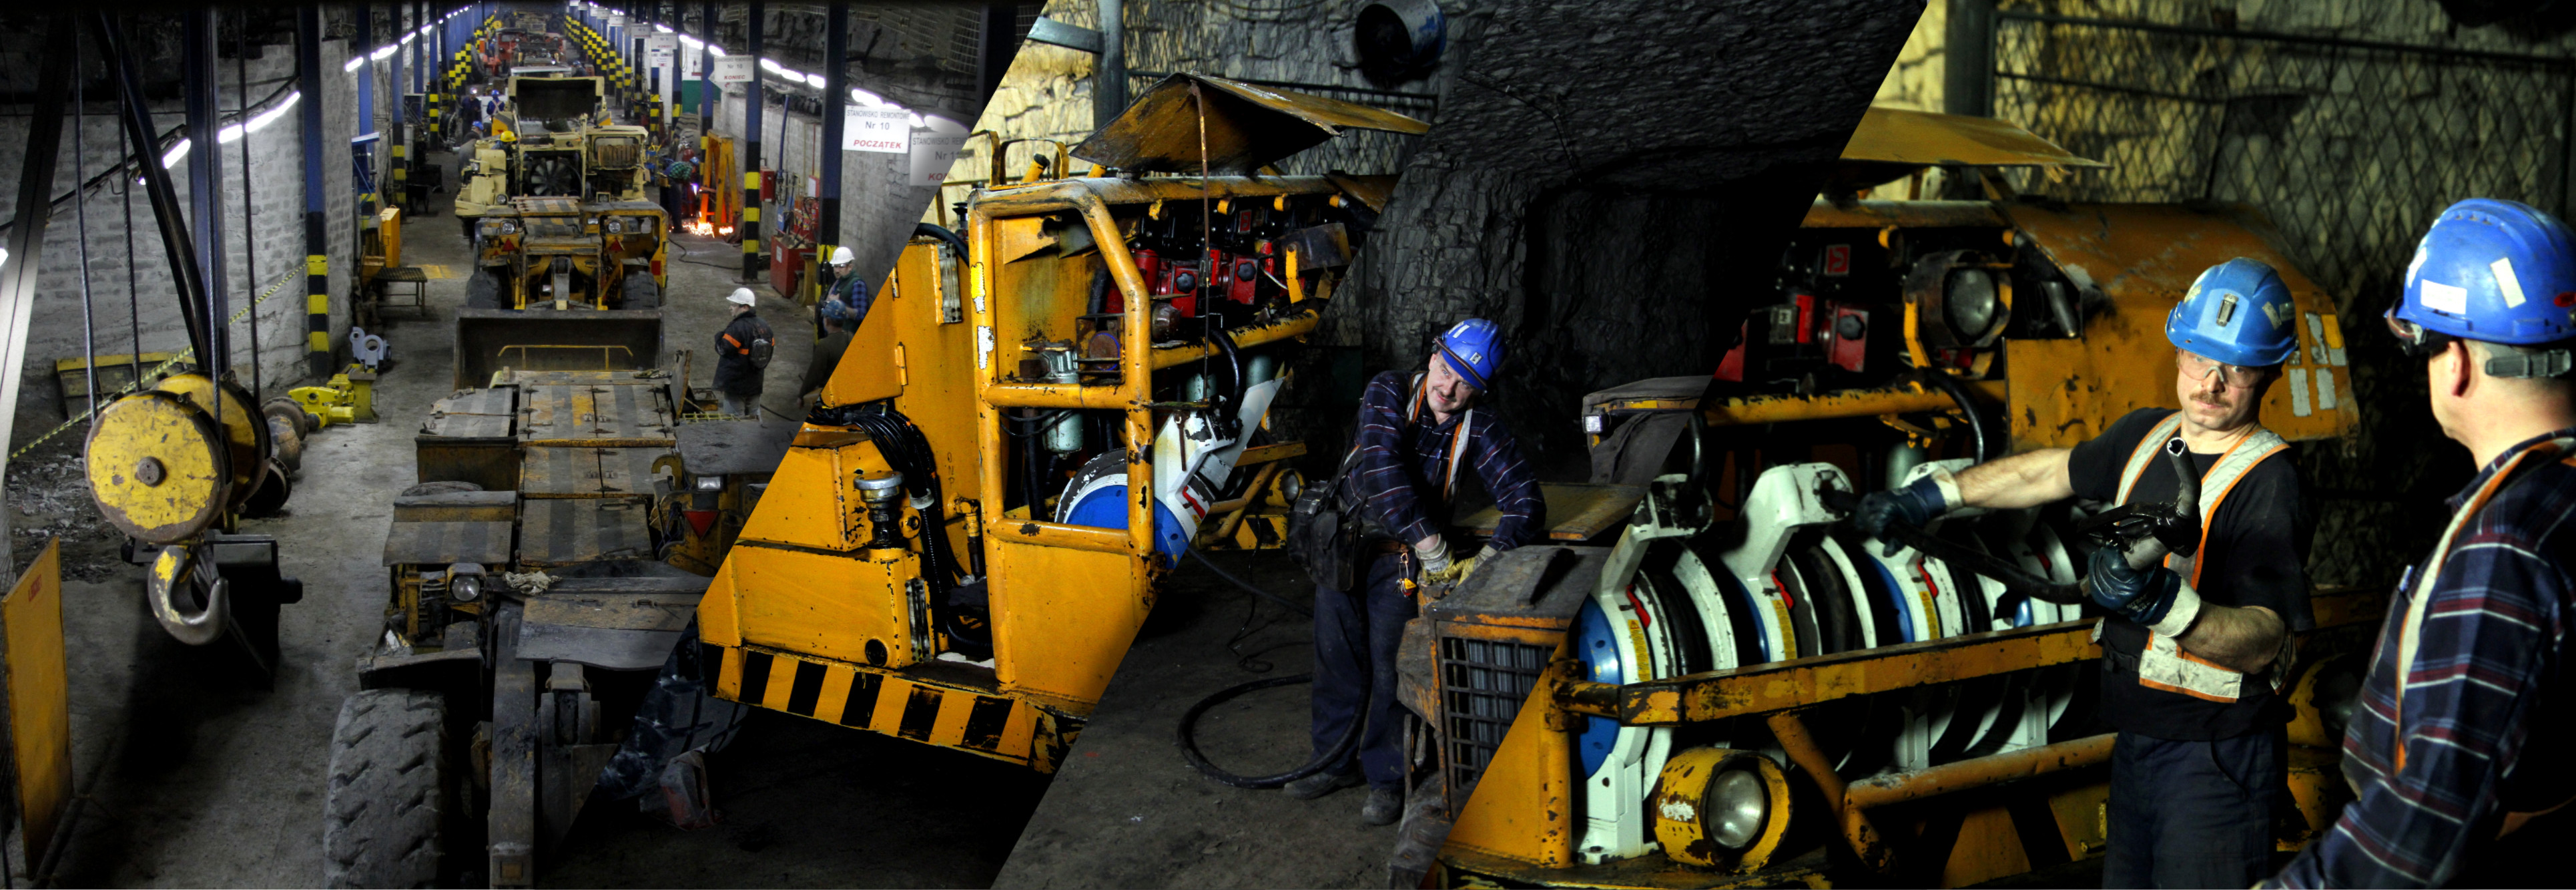 Mechanical Operator Mining Maintenance Queensland-iMINCO.net Mining Information